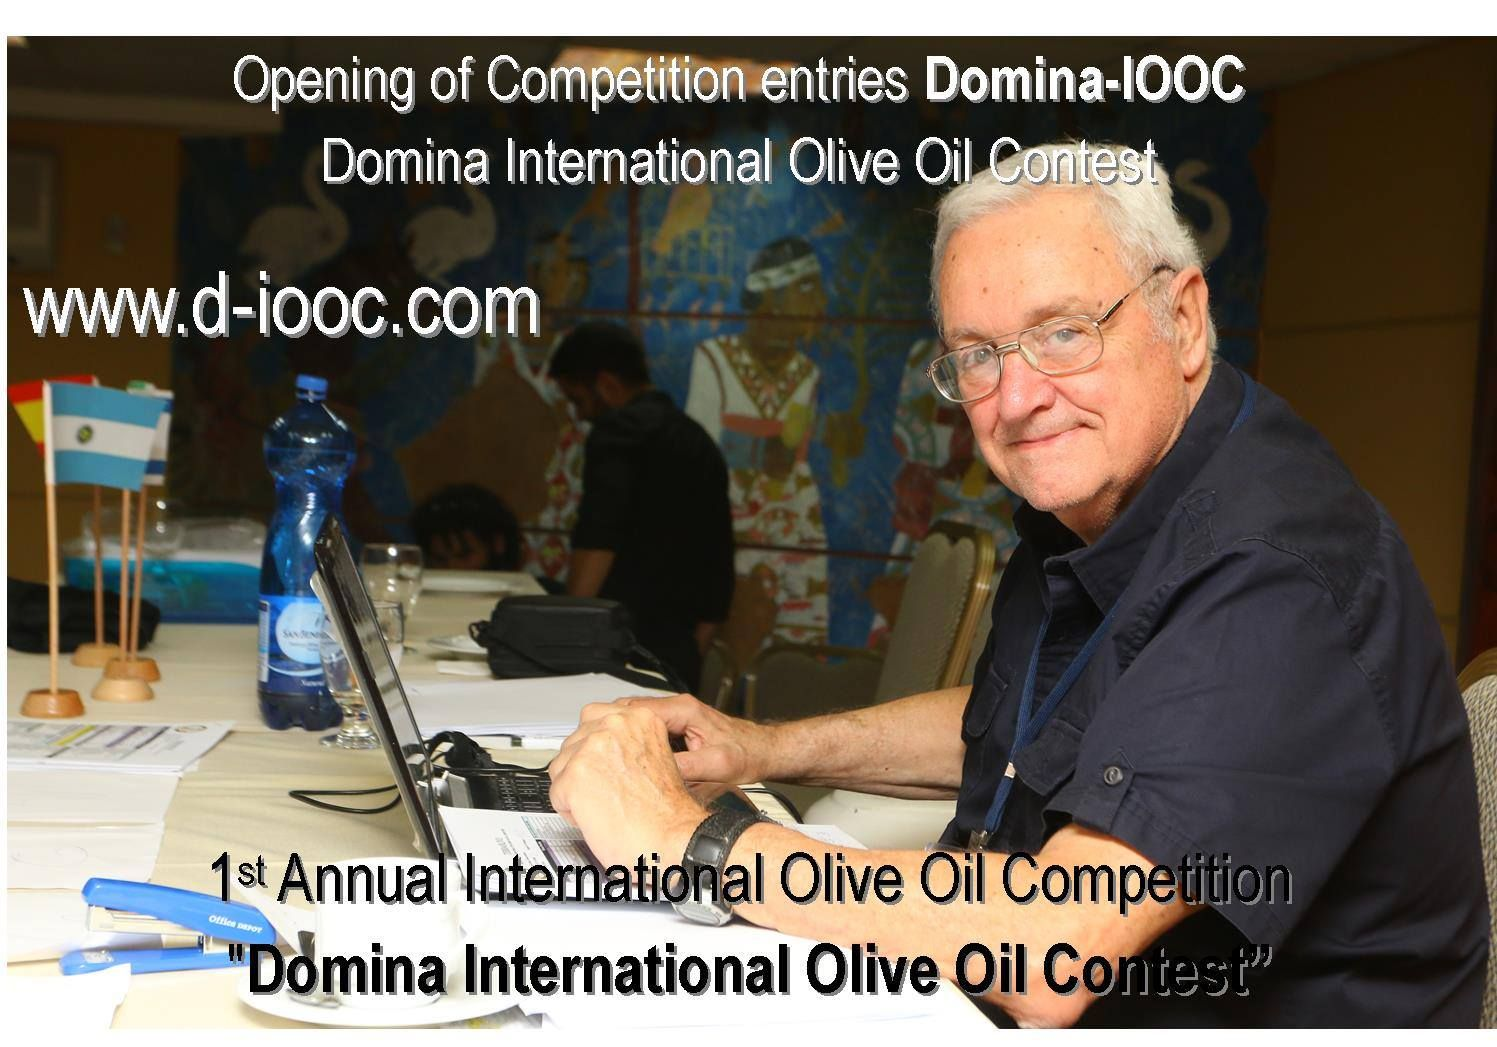 DominaIooc  Technical Director From Argentina Prof Ral Csar